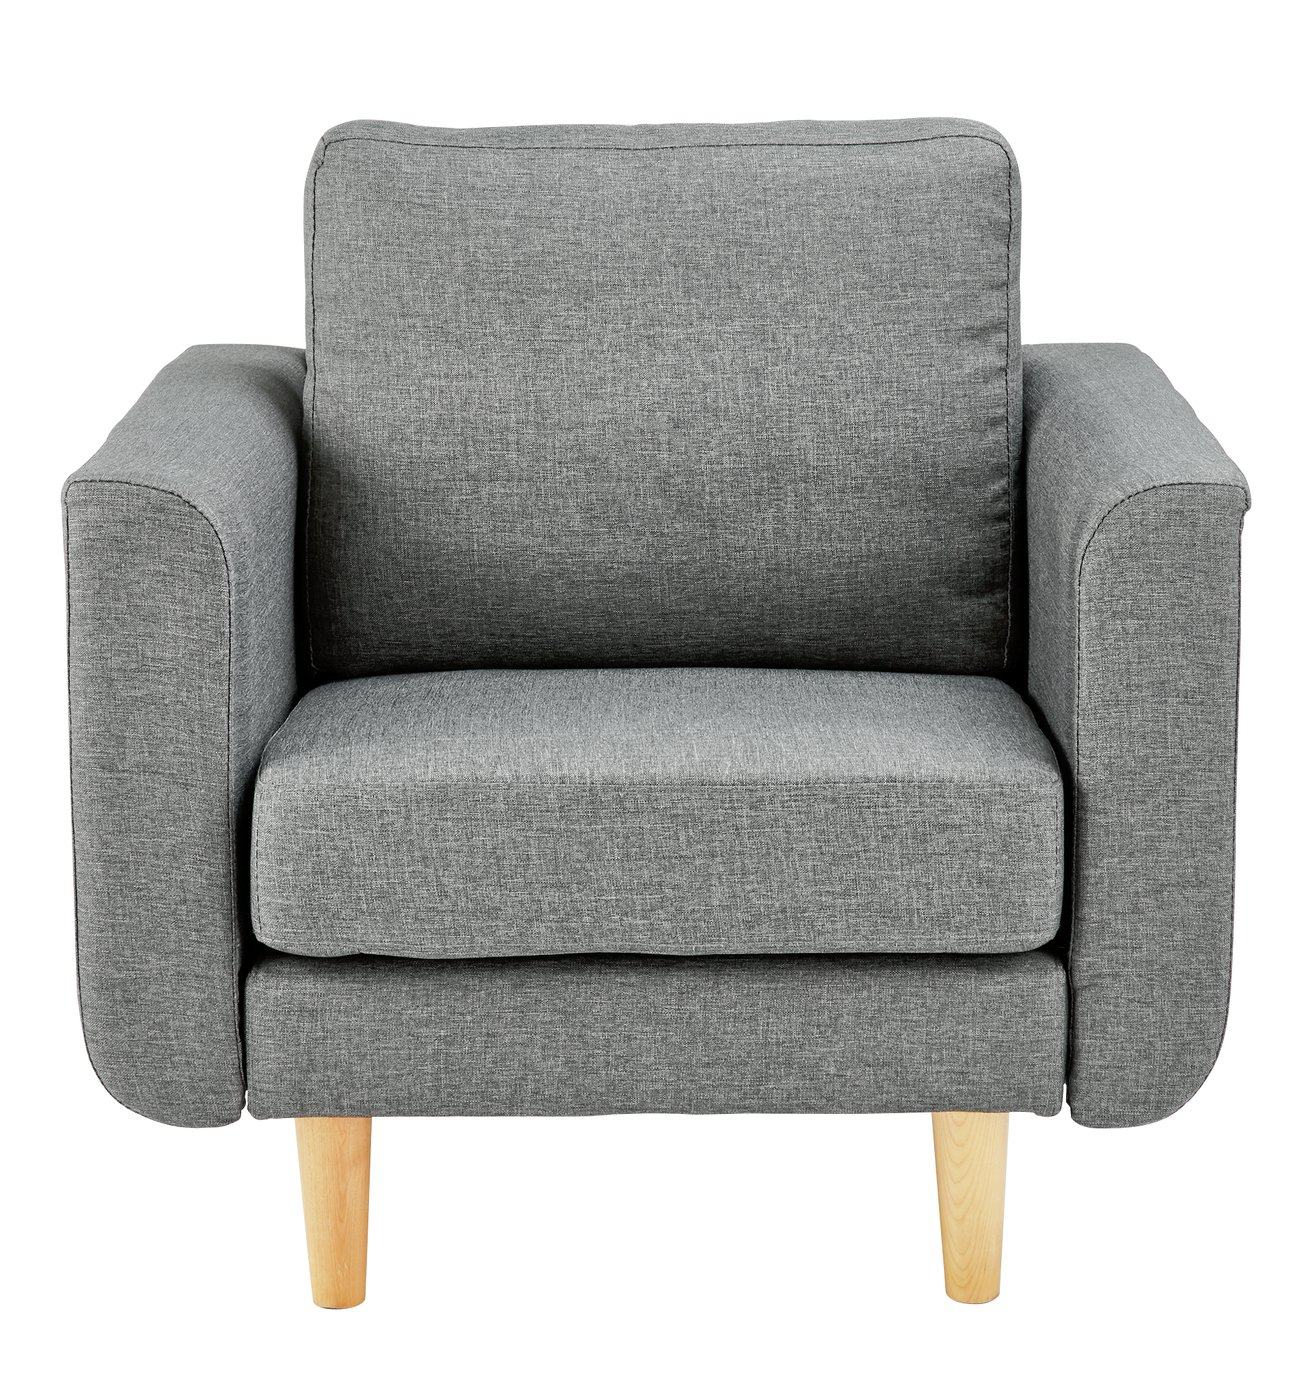 swivel cuddle chair york blue striped covers armchairs chairs recliners argos home remi fabric armchair in a box light grey